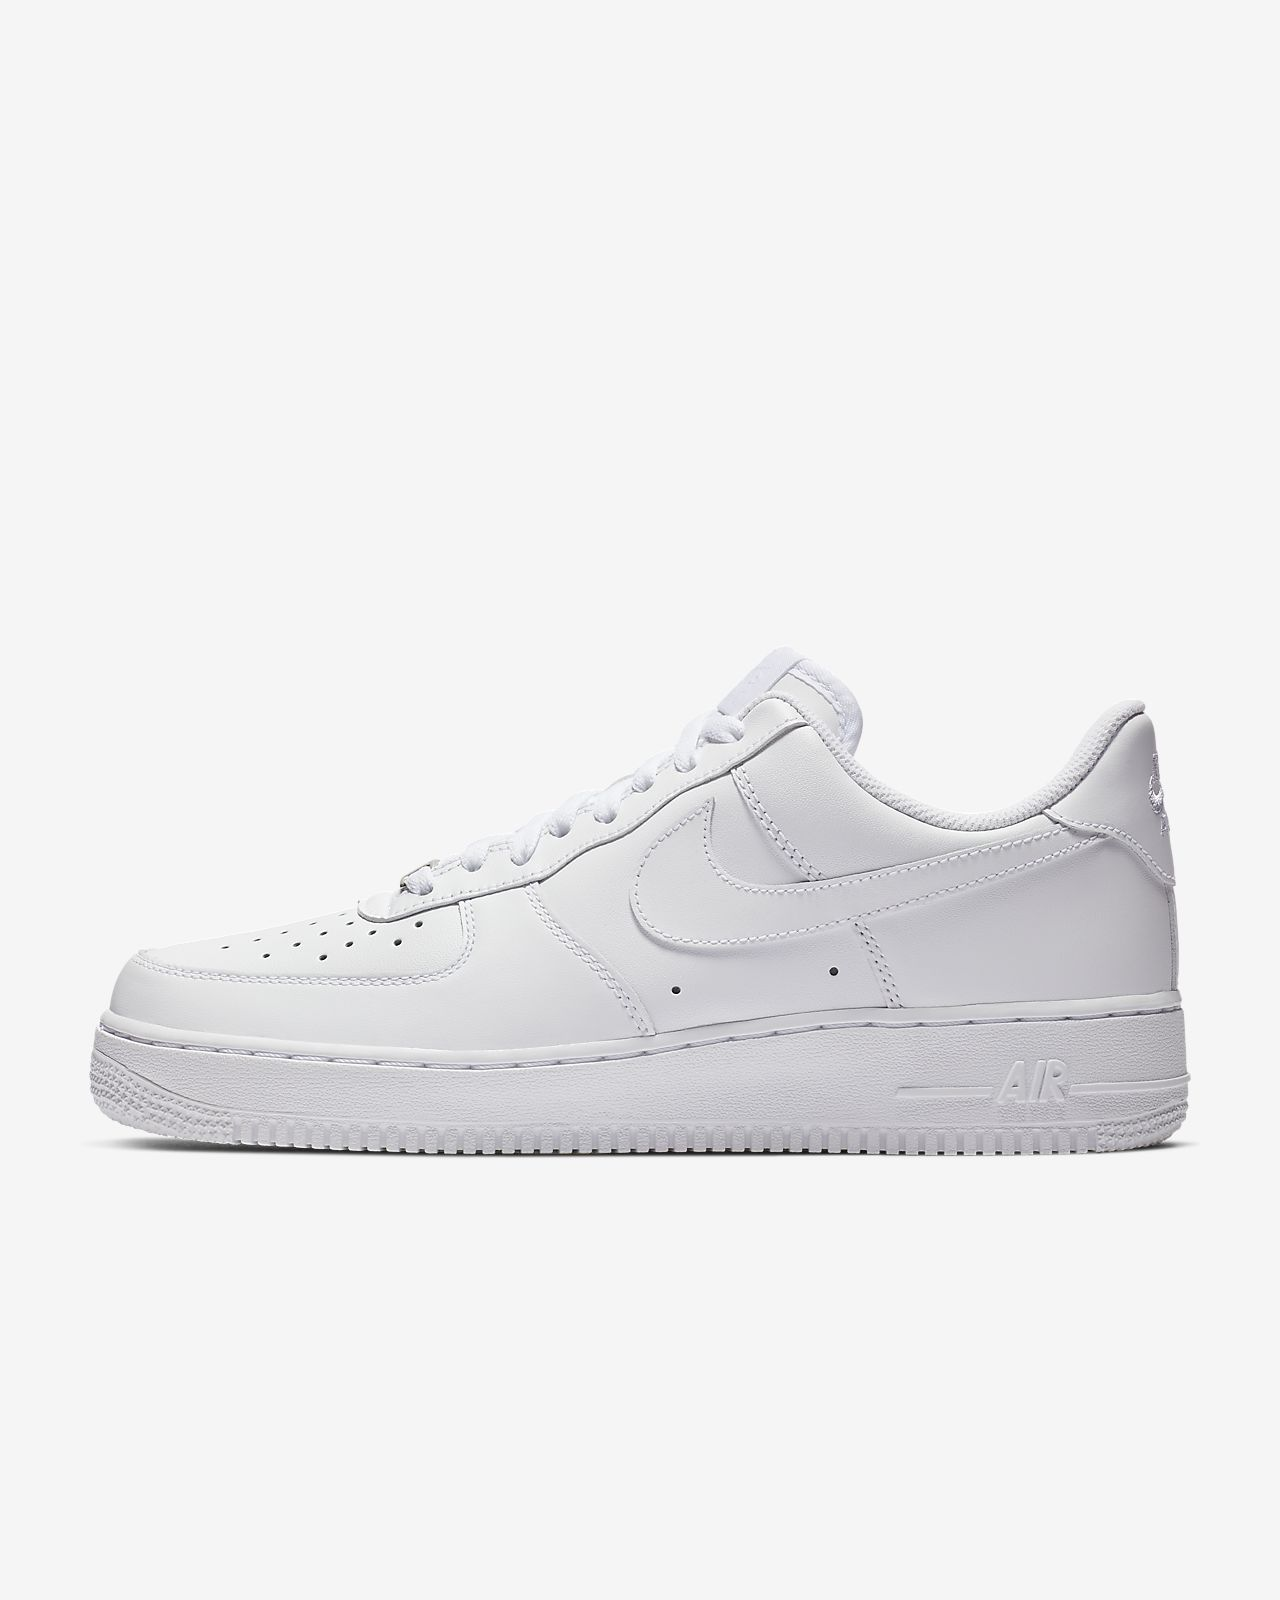 new concept 2faa7 71650 Low Resolution Nike Air Force 1  07 Damenschuh Nike Air Force 1  07  Damenschuh